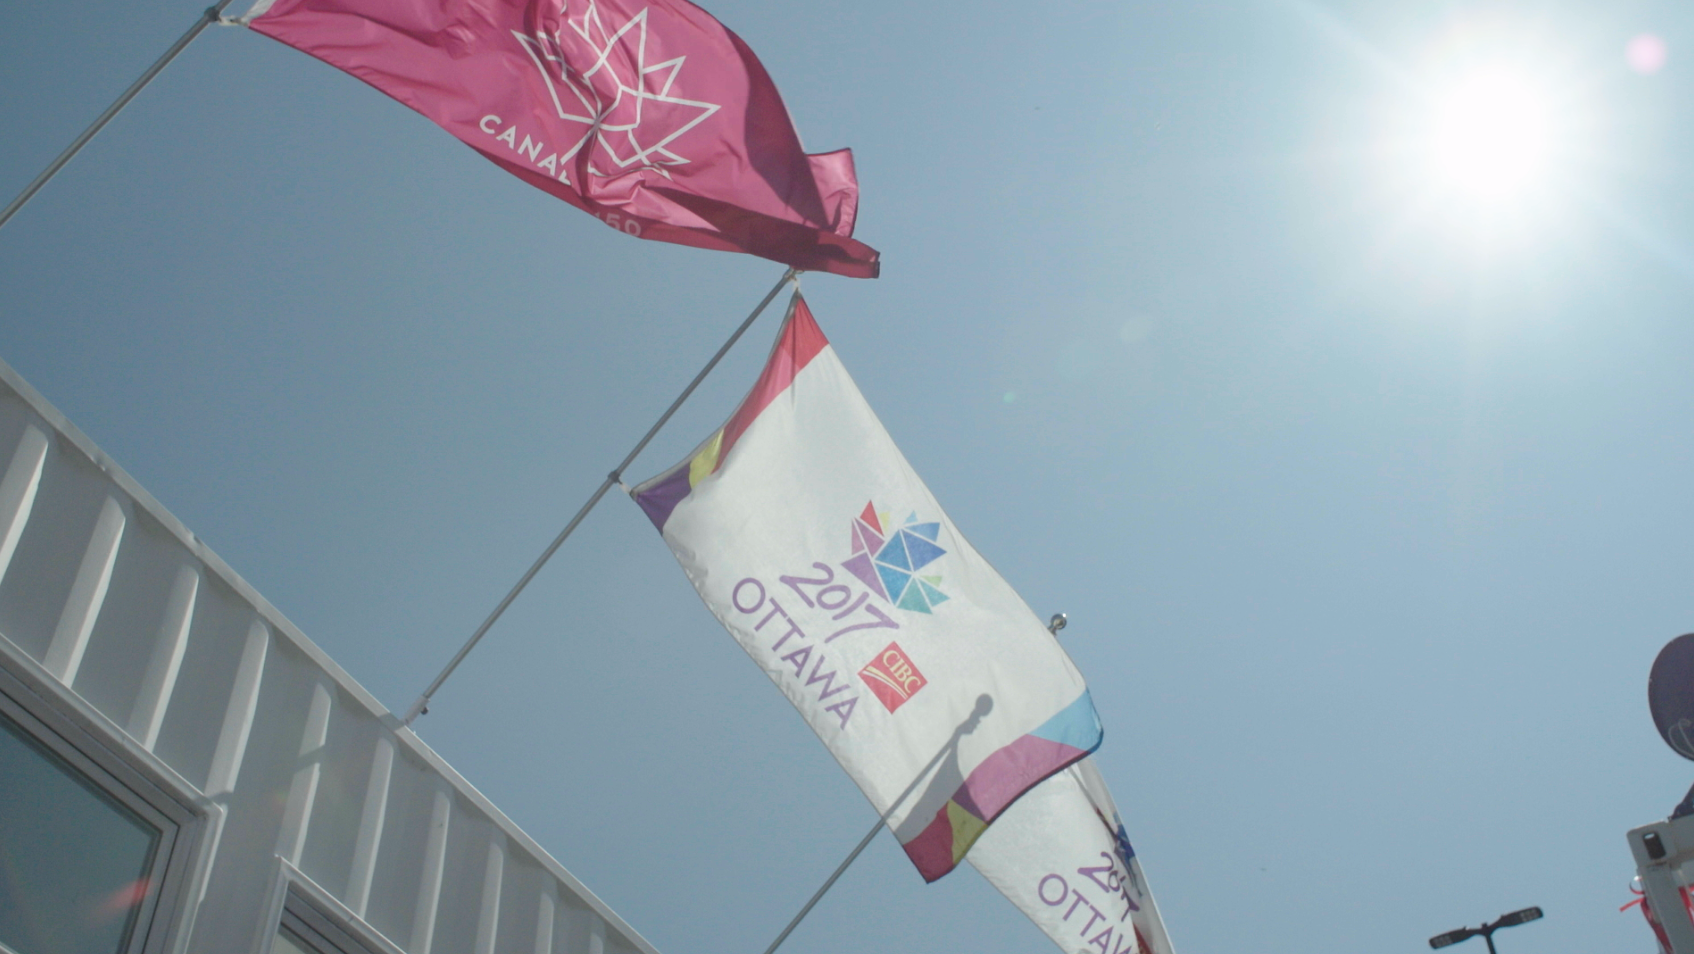 The Tale of a Town Ottawa Inspiration Village Partner Flags on top of the Storygathering Booth